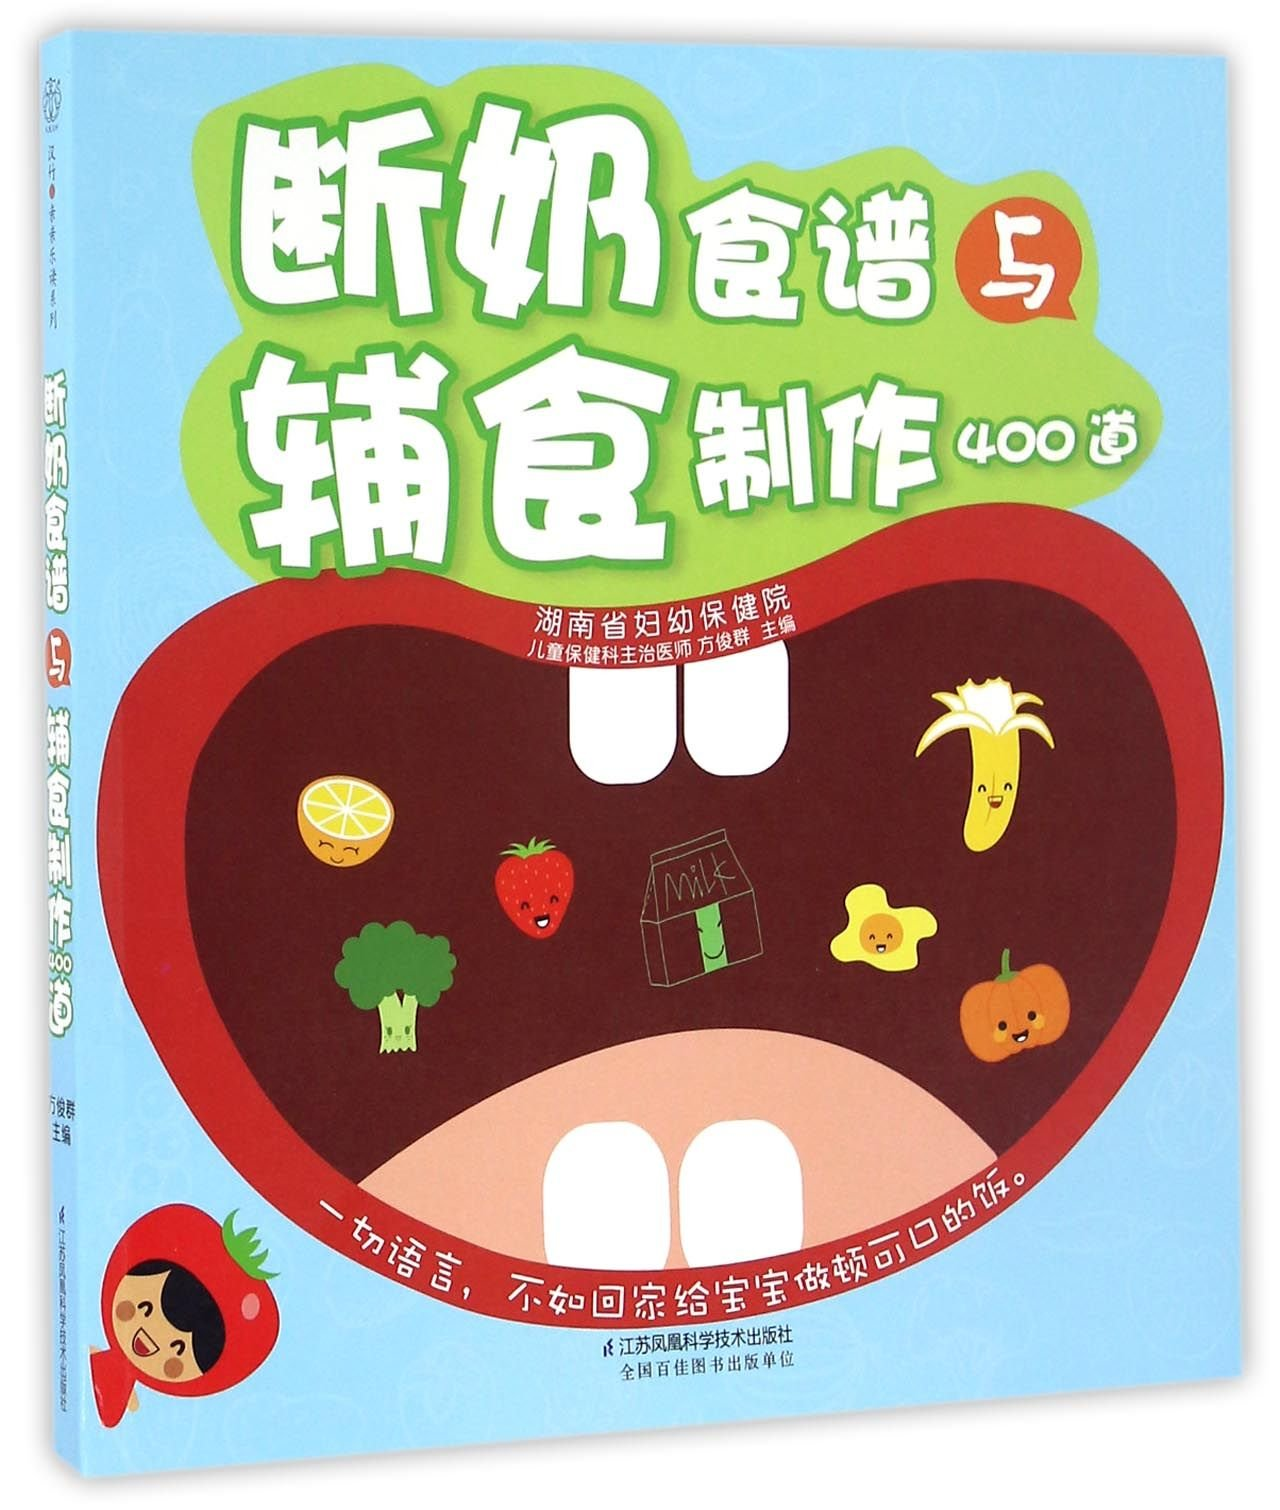 Download 400 Ablactation Recipes and Dietary Supplements (Chinese Edition) ebook